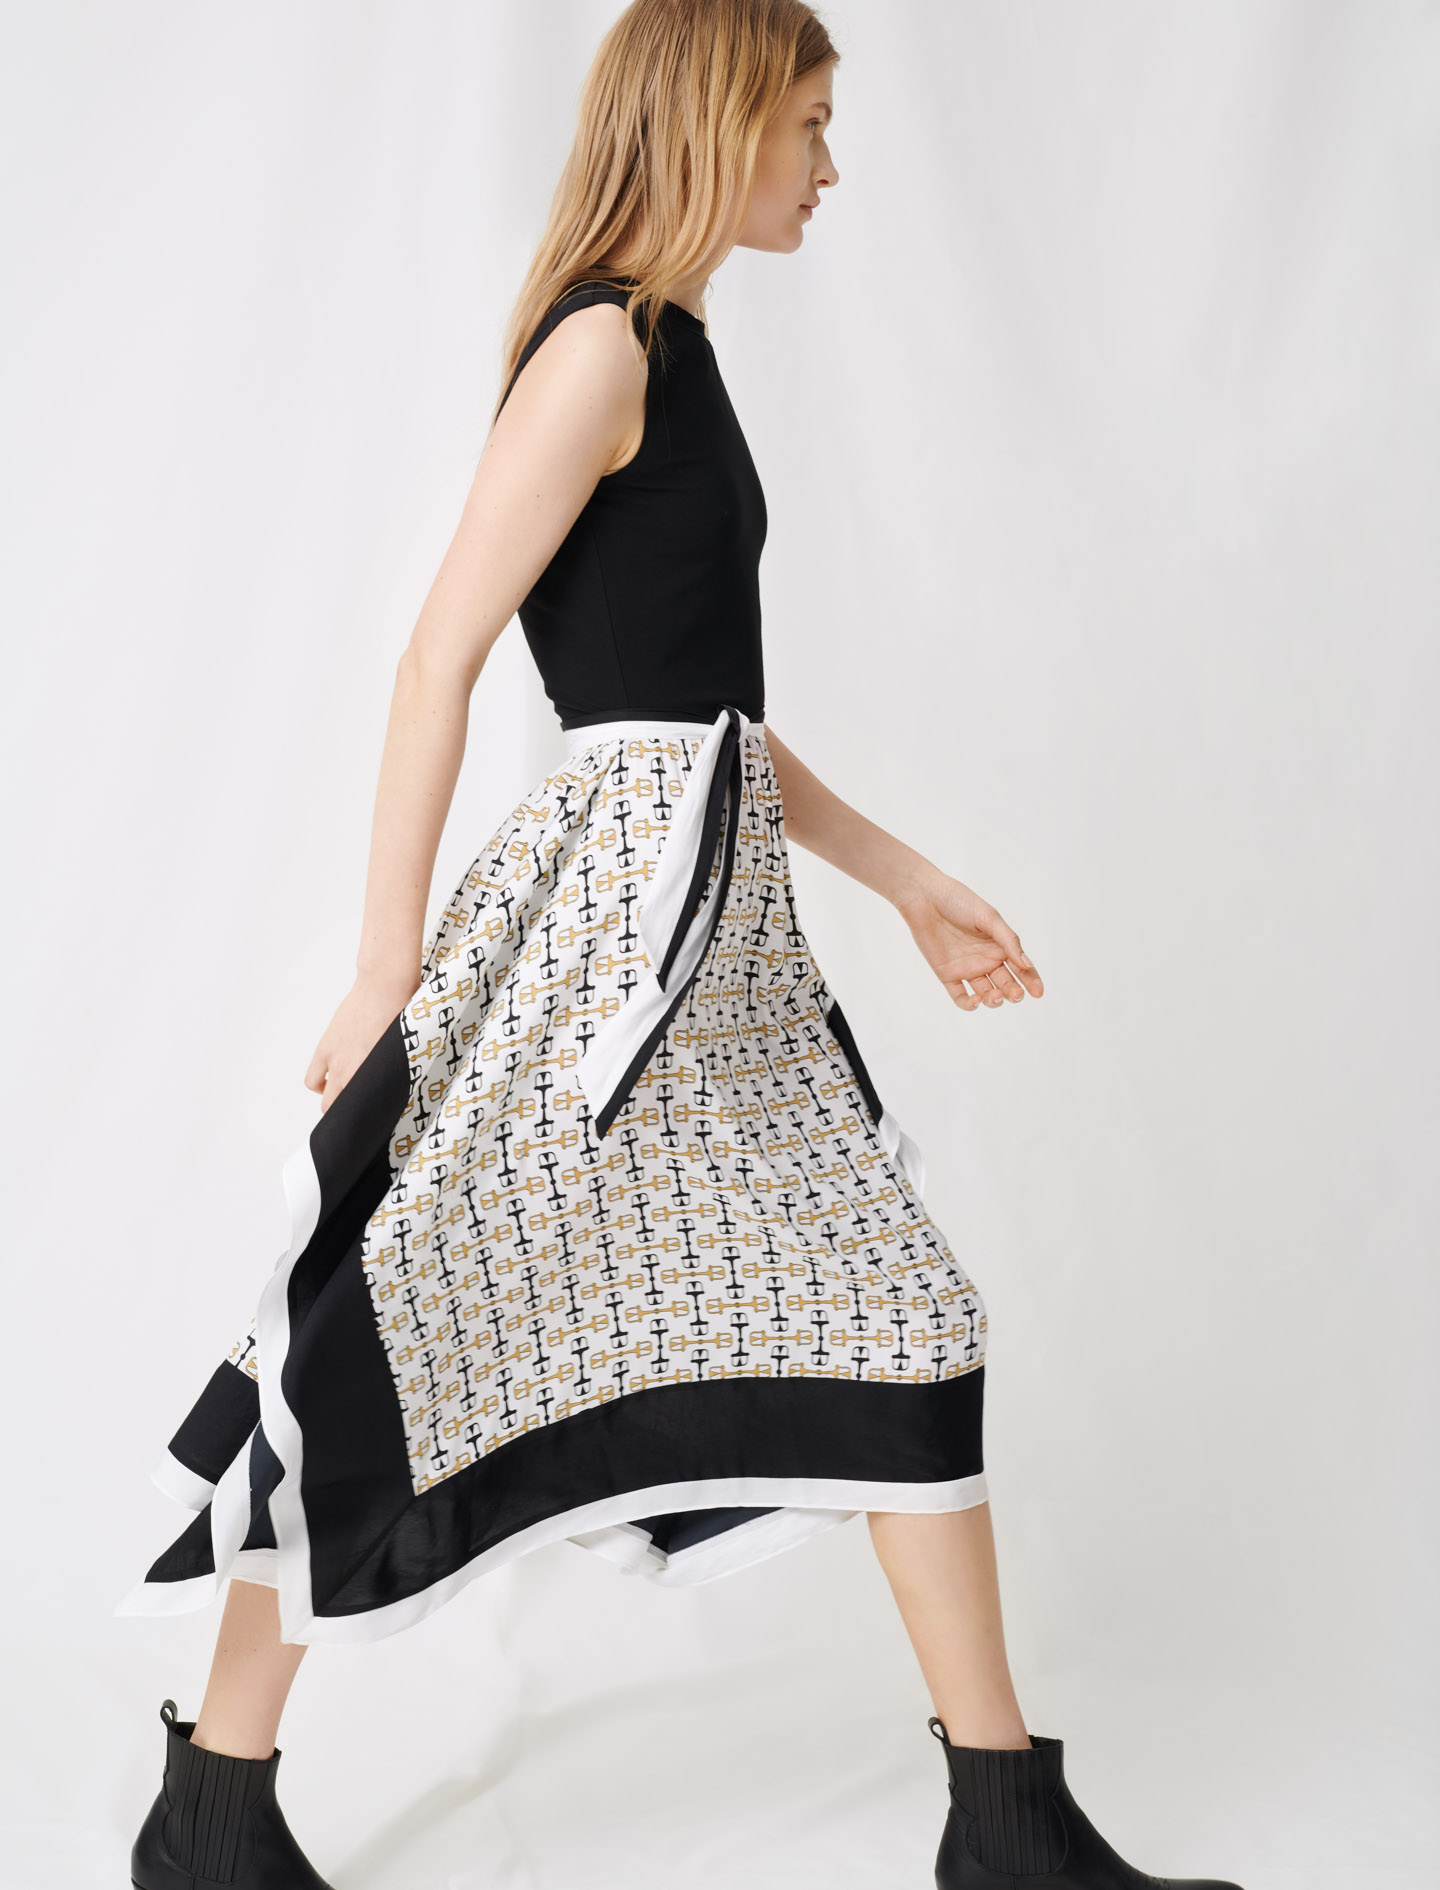 Black dress with scarf style motifs - Multi-colour